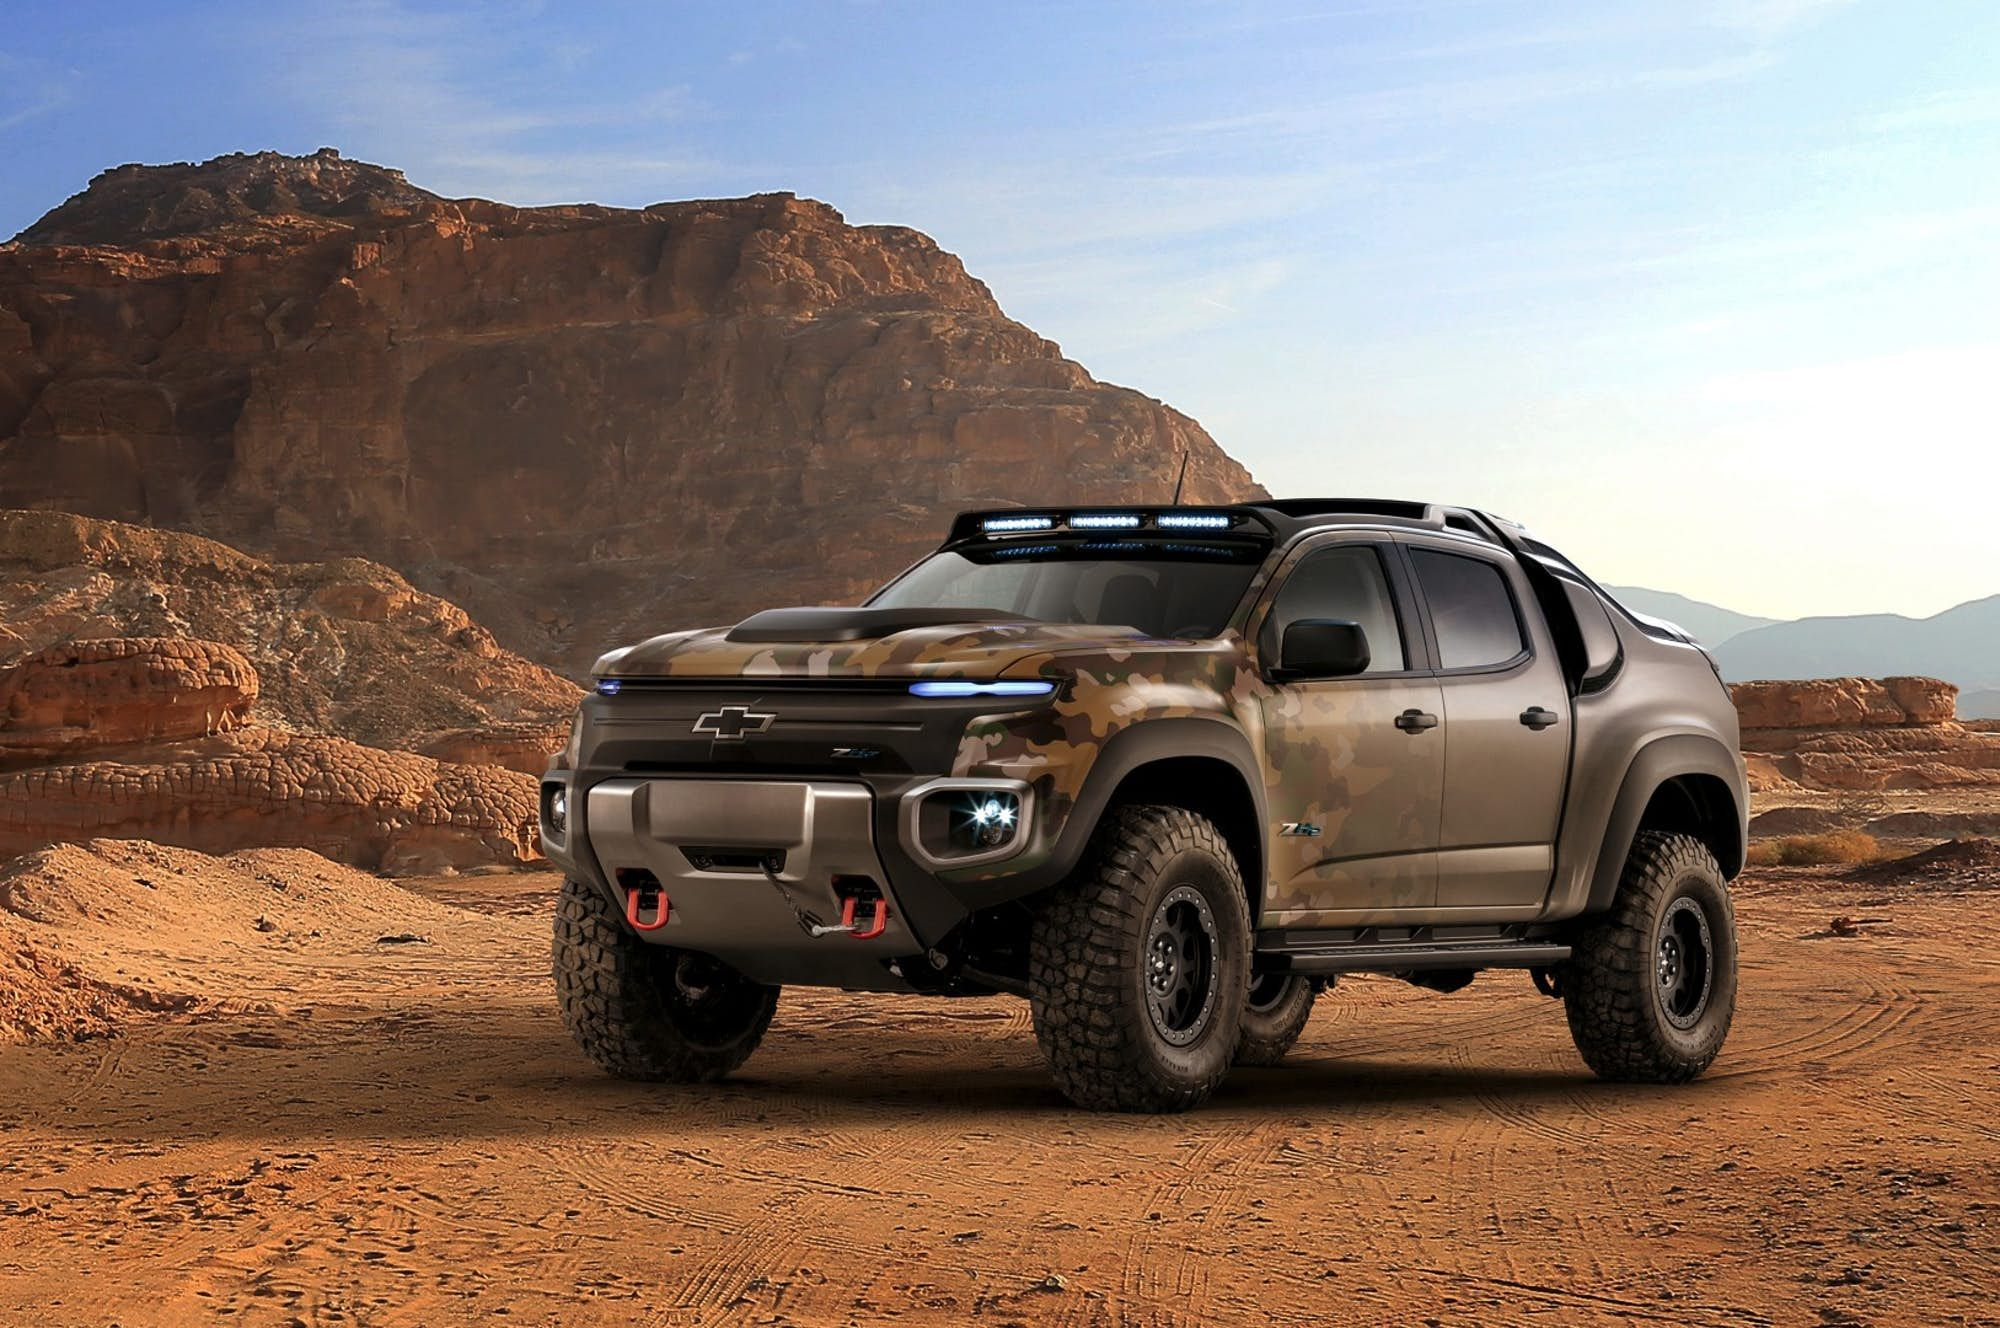 The chevy colorado zh2 is a more extreme off road ready pickup truck